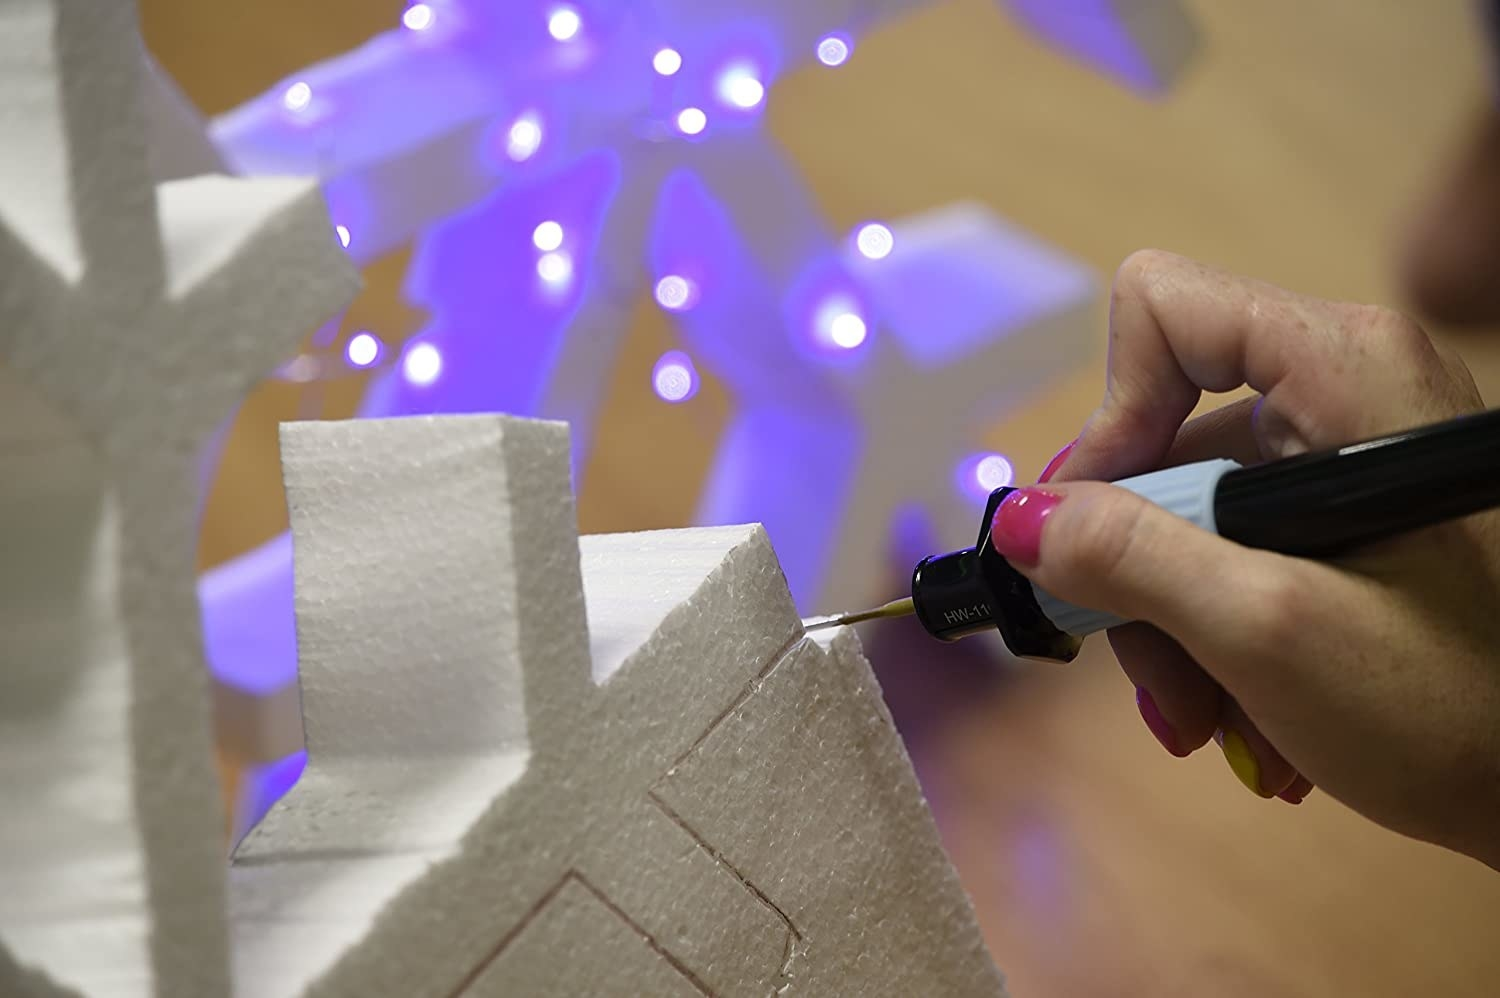 A person carving giant snowflakes out of foam with the heat tool